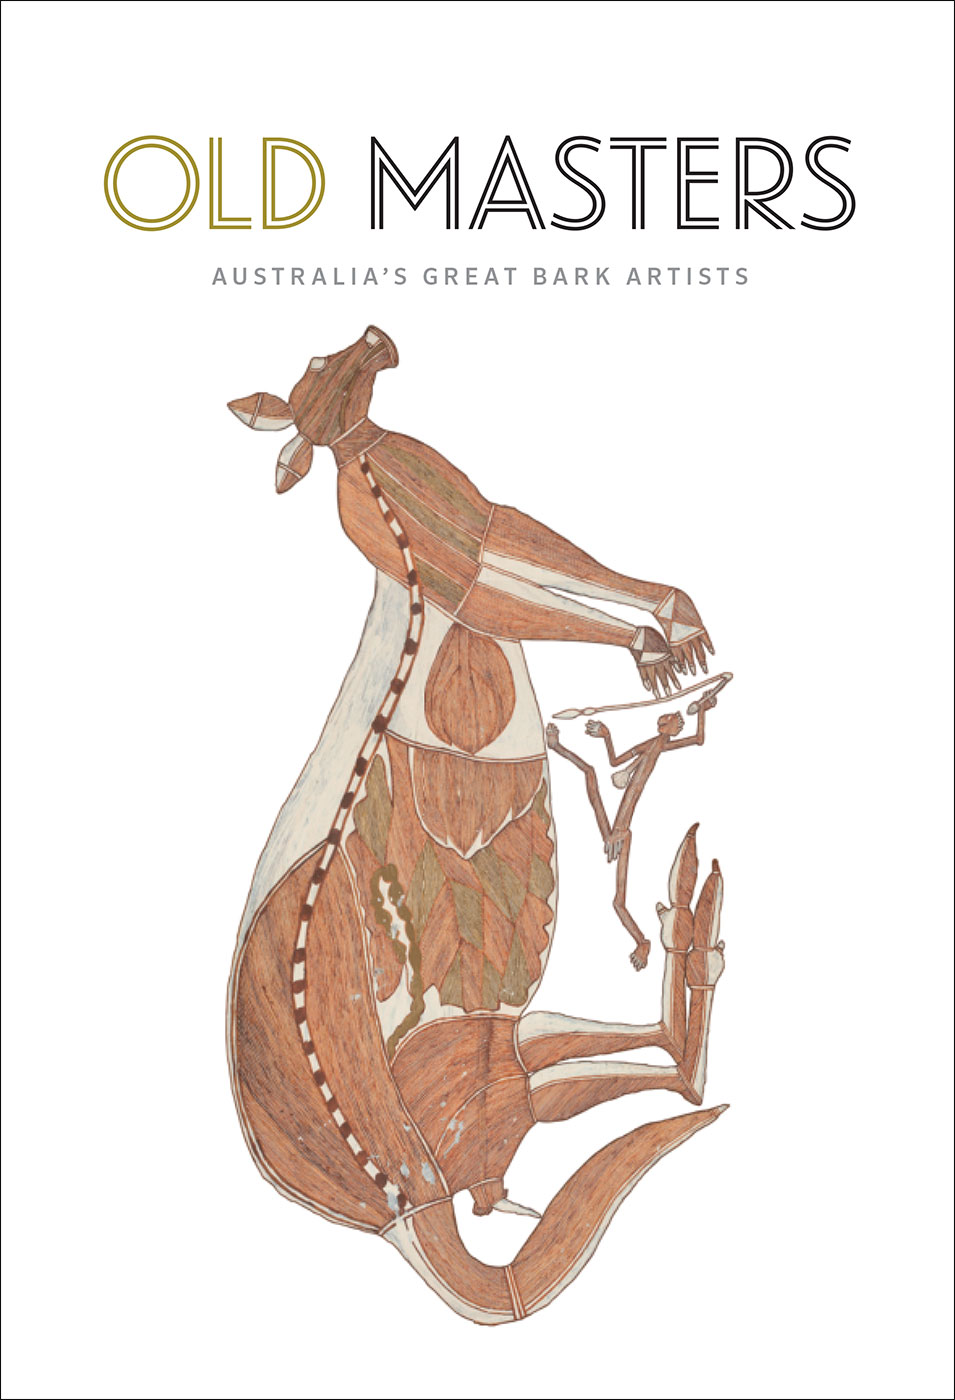 A painting of a kangaroo with the text 'Old Masters: Australia's Great Bark Artists'